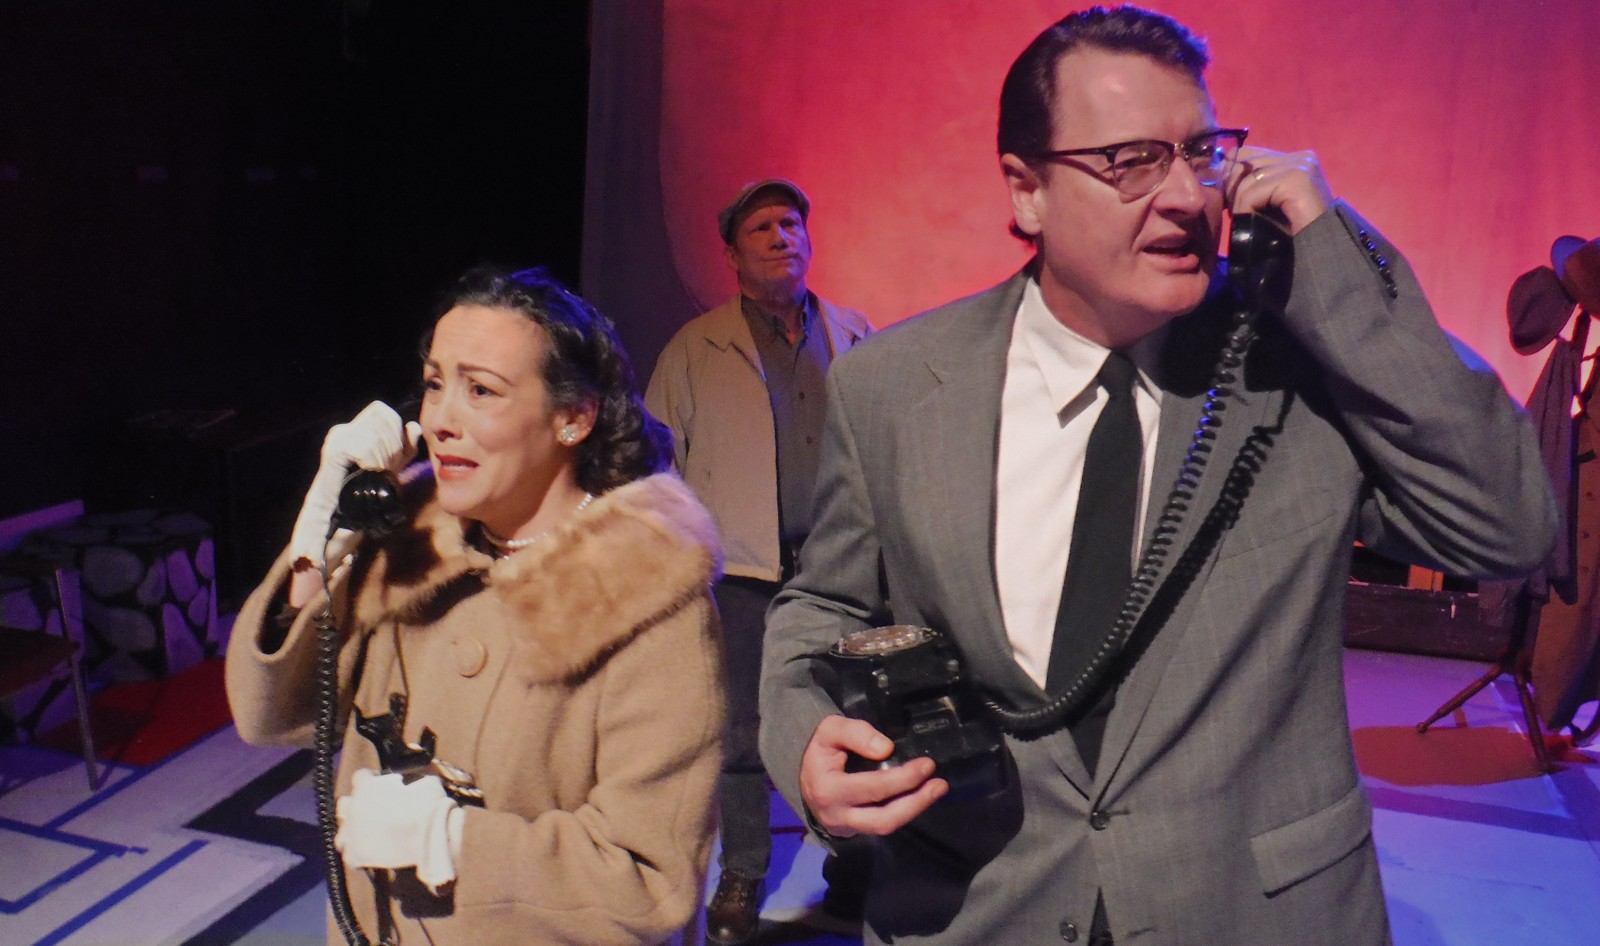 Lisa Vitrano, Richard Lambert and Guy Wagner are superb in 'The Un-American' at Subversive Theatre.